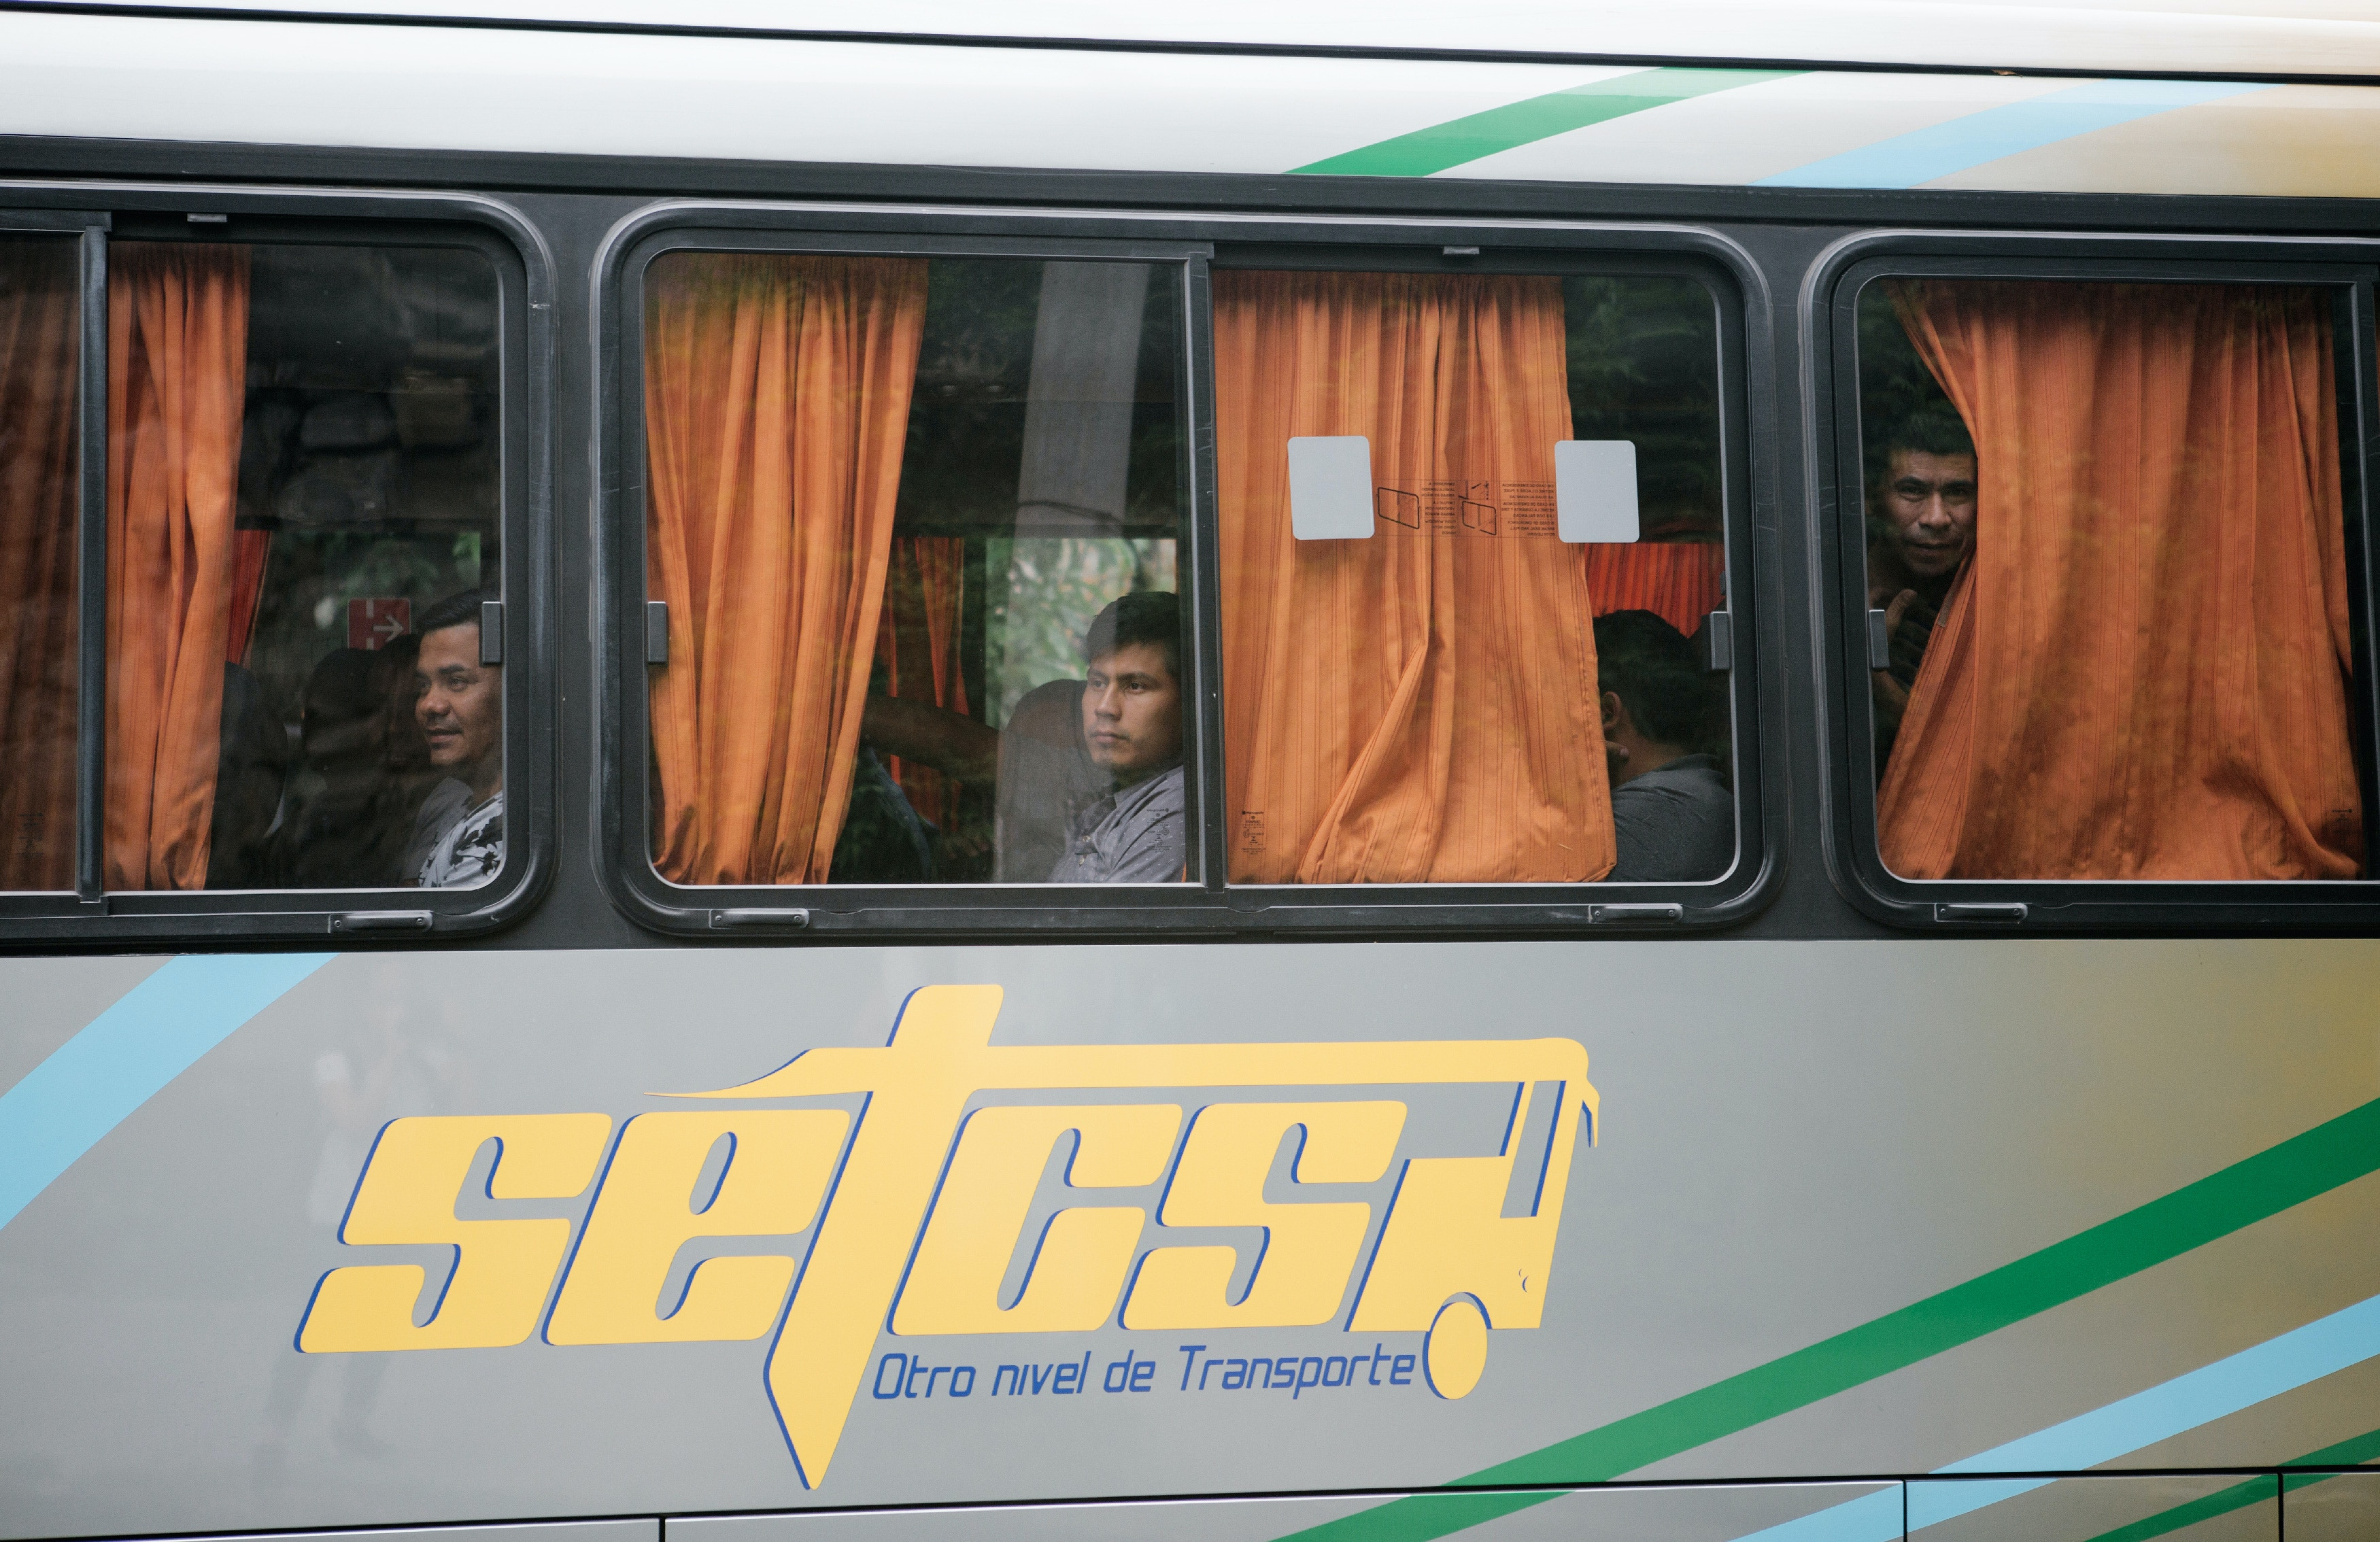 Deported migrants sit on a bus as they enter an immigration detention facility, called the Centro de Atención Integral para el Migrante (CAIM), in San Salvador, El Salvador.